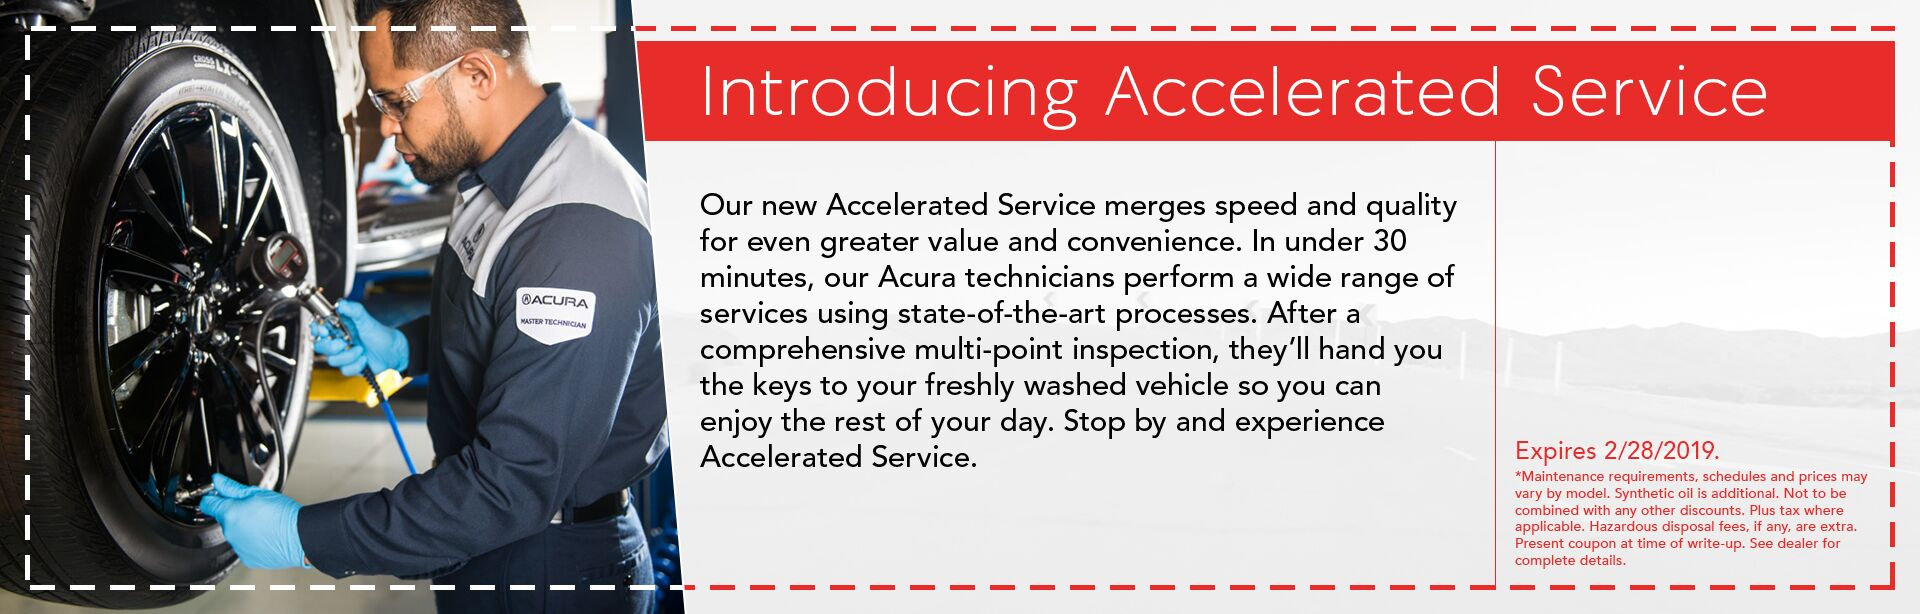 Introducing Accelerated Service